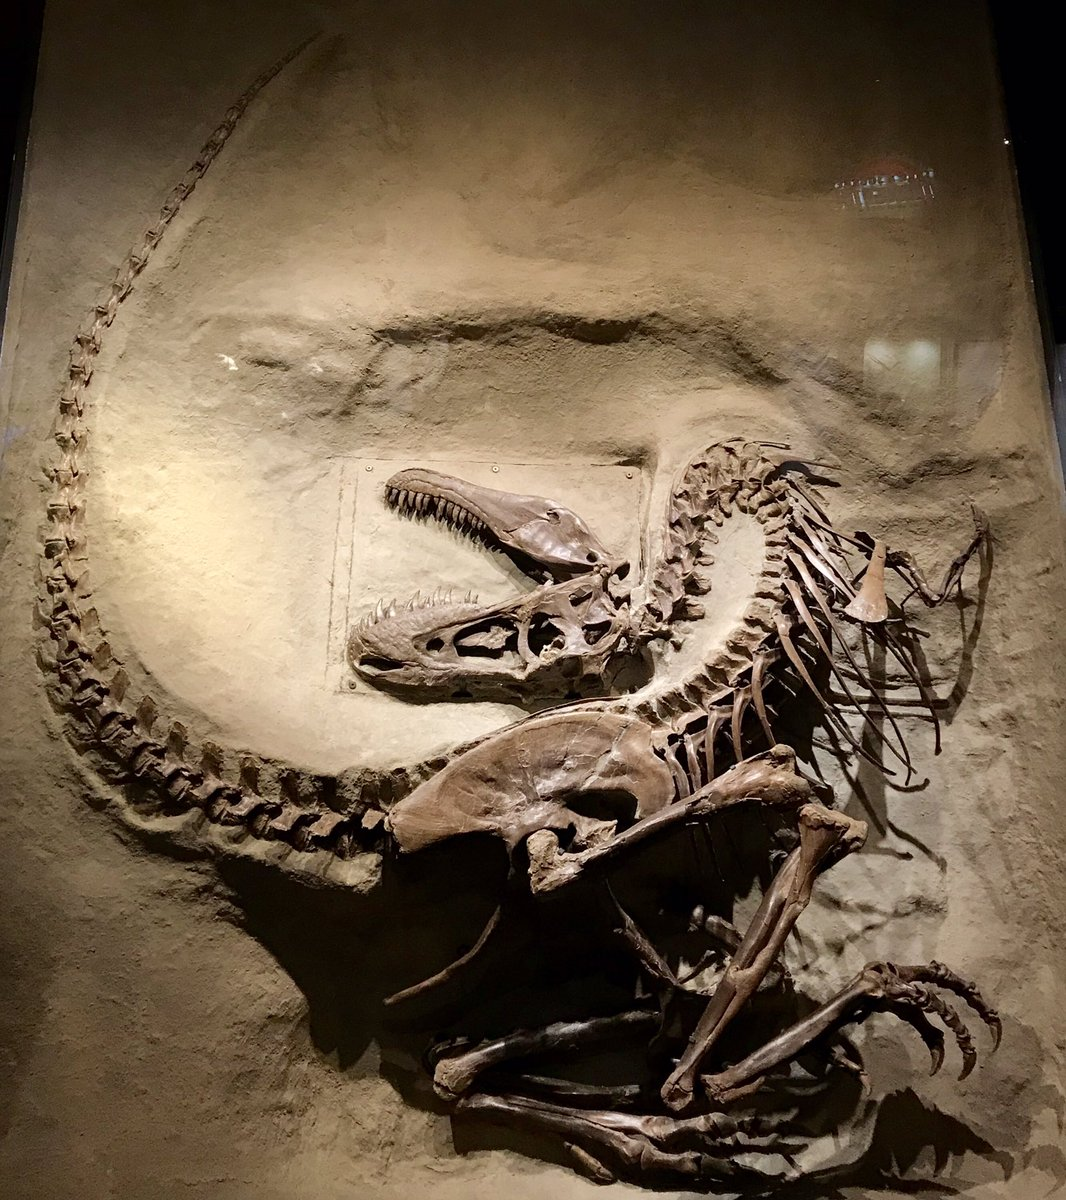 Mind-blowing, incredibly complete juvenile specimen of the tyrannosaur Gorgosaurus at @RoyalTyrrell in Alberta, Canada. #FossilFriday <br>http://pic.twitter.com/eCI0B0dR5t